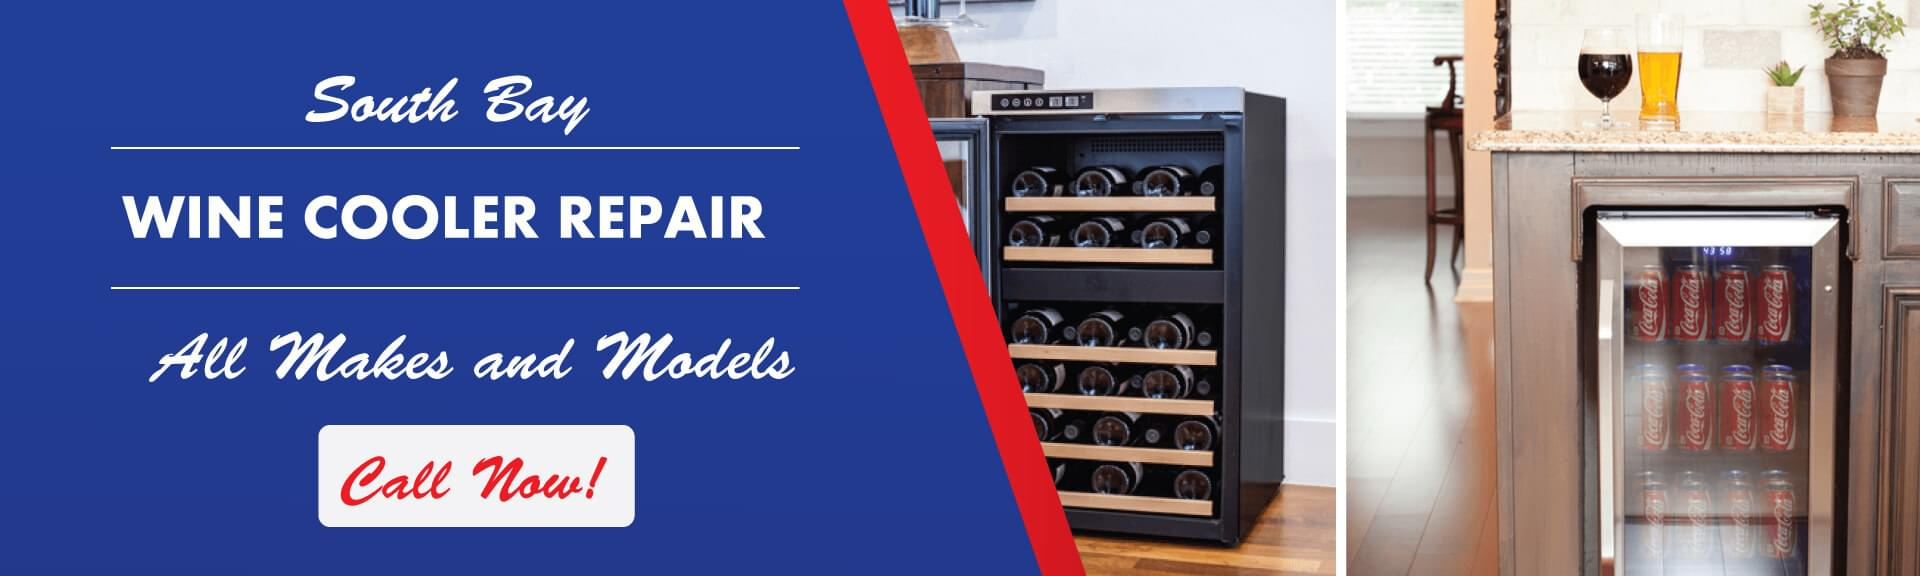 Wine Cooler Repair South Bay Service Masters Appliance